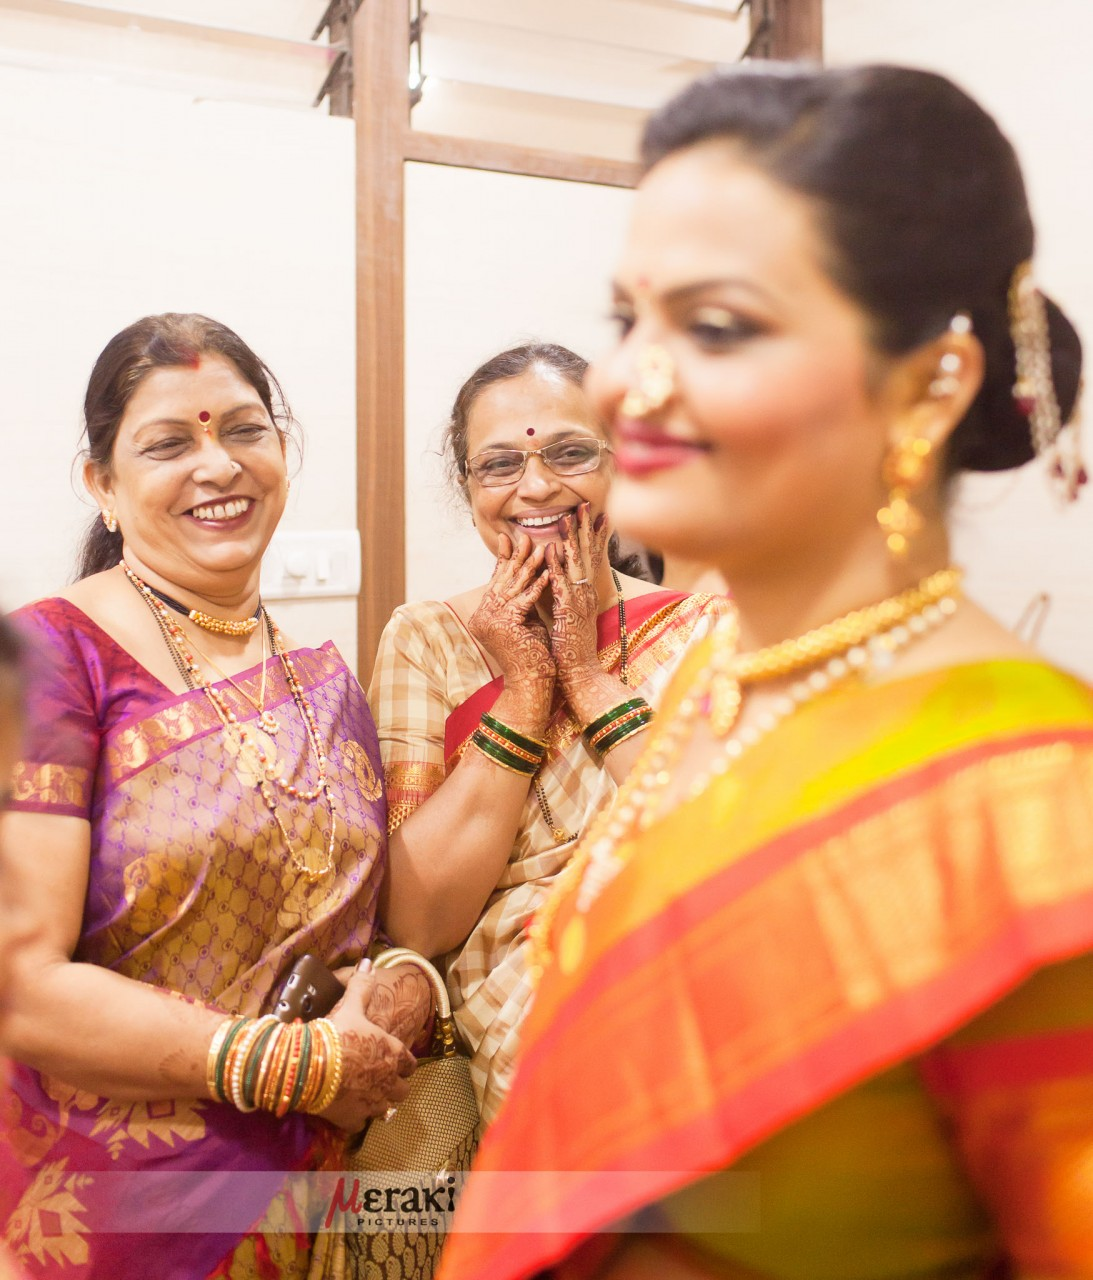 002-IMG_2542-Ajinkya_Maithili_Wedding-WeddingDay-WBS